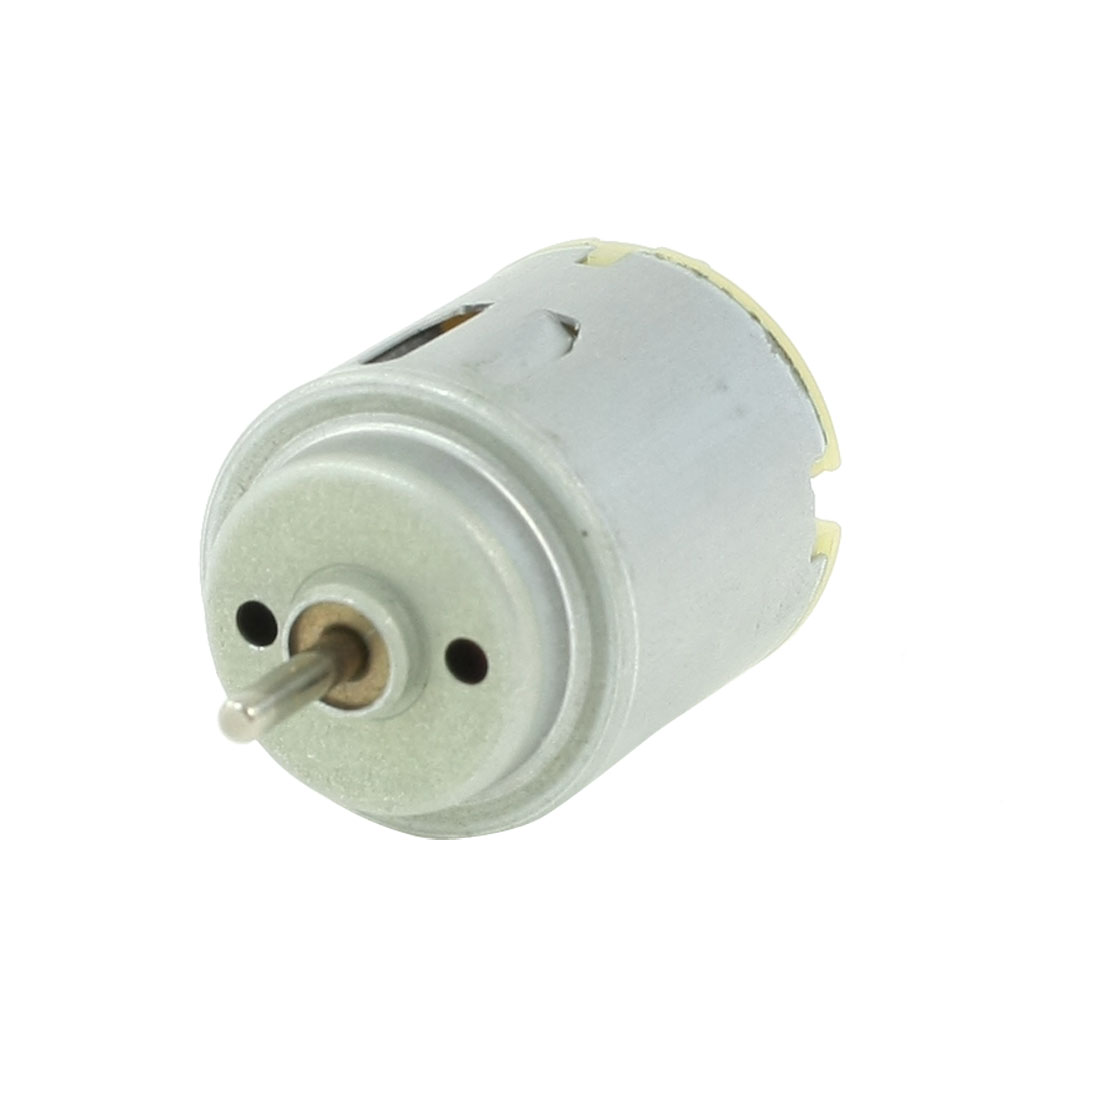 1500RPM-4-5V-0-03A-2-Pin-Connector-Cylindrical-Micro-DC-Motor